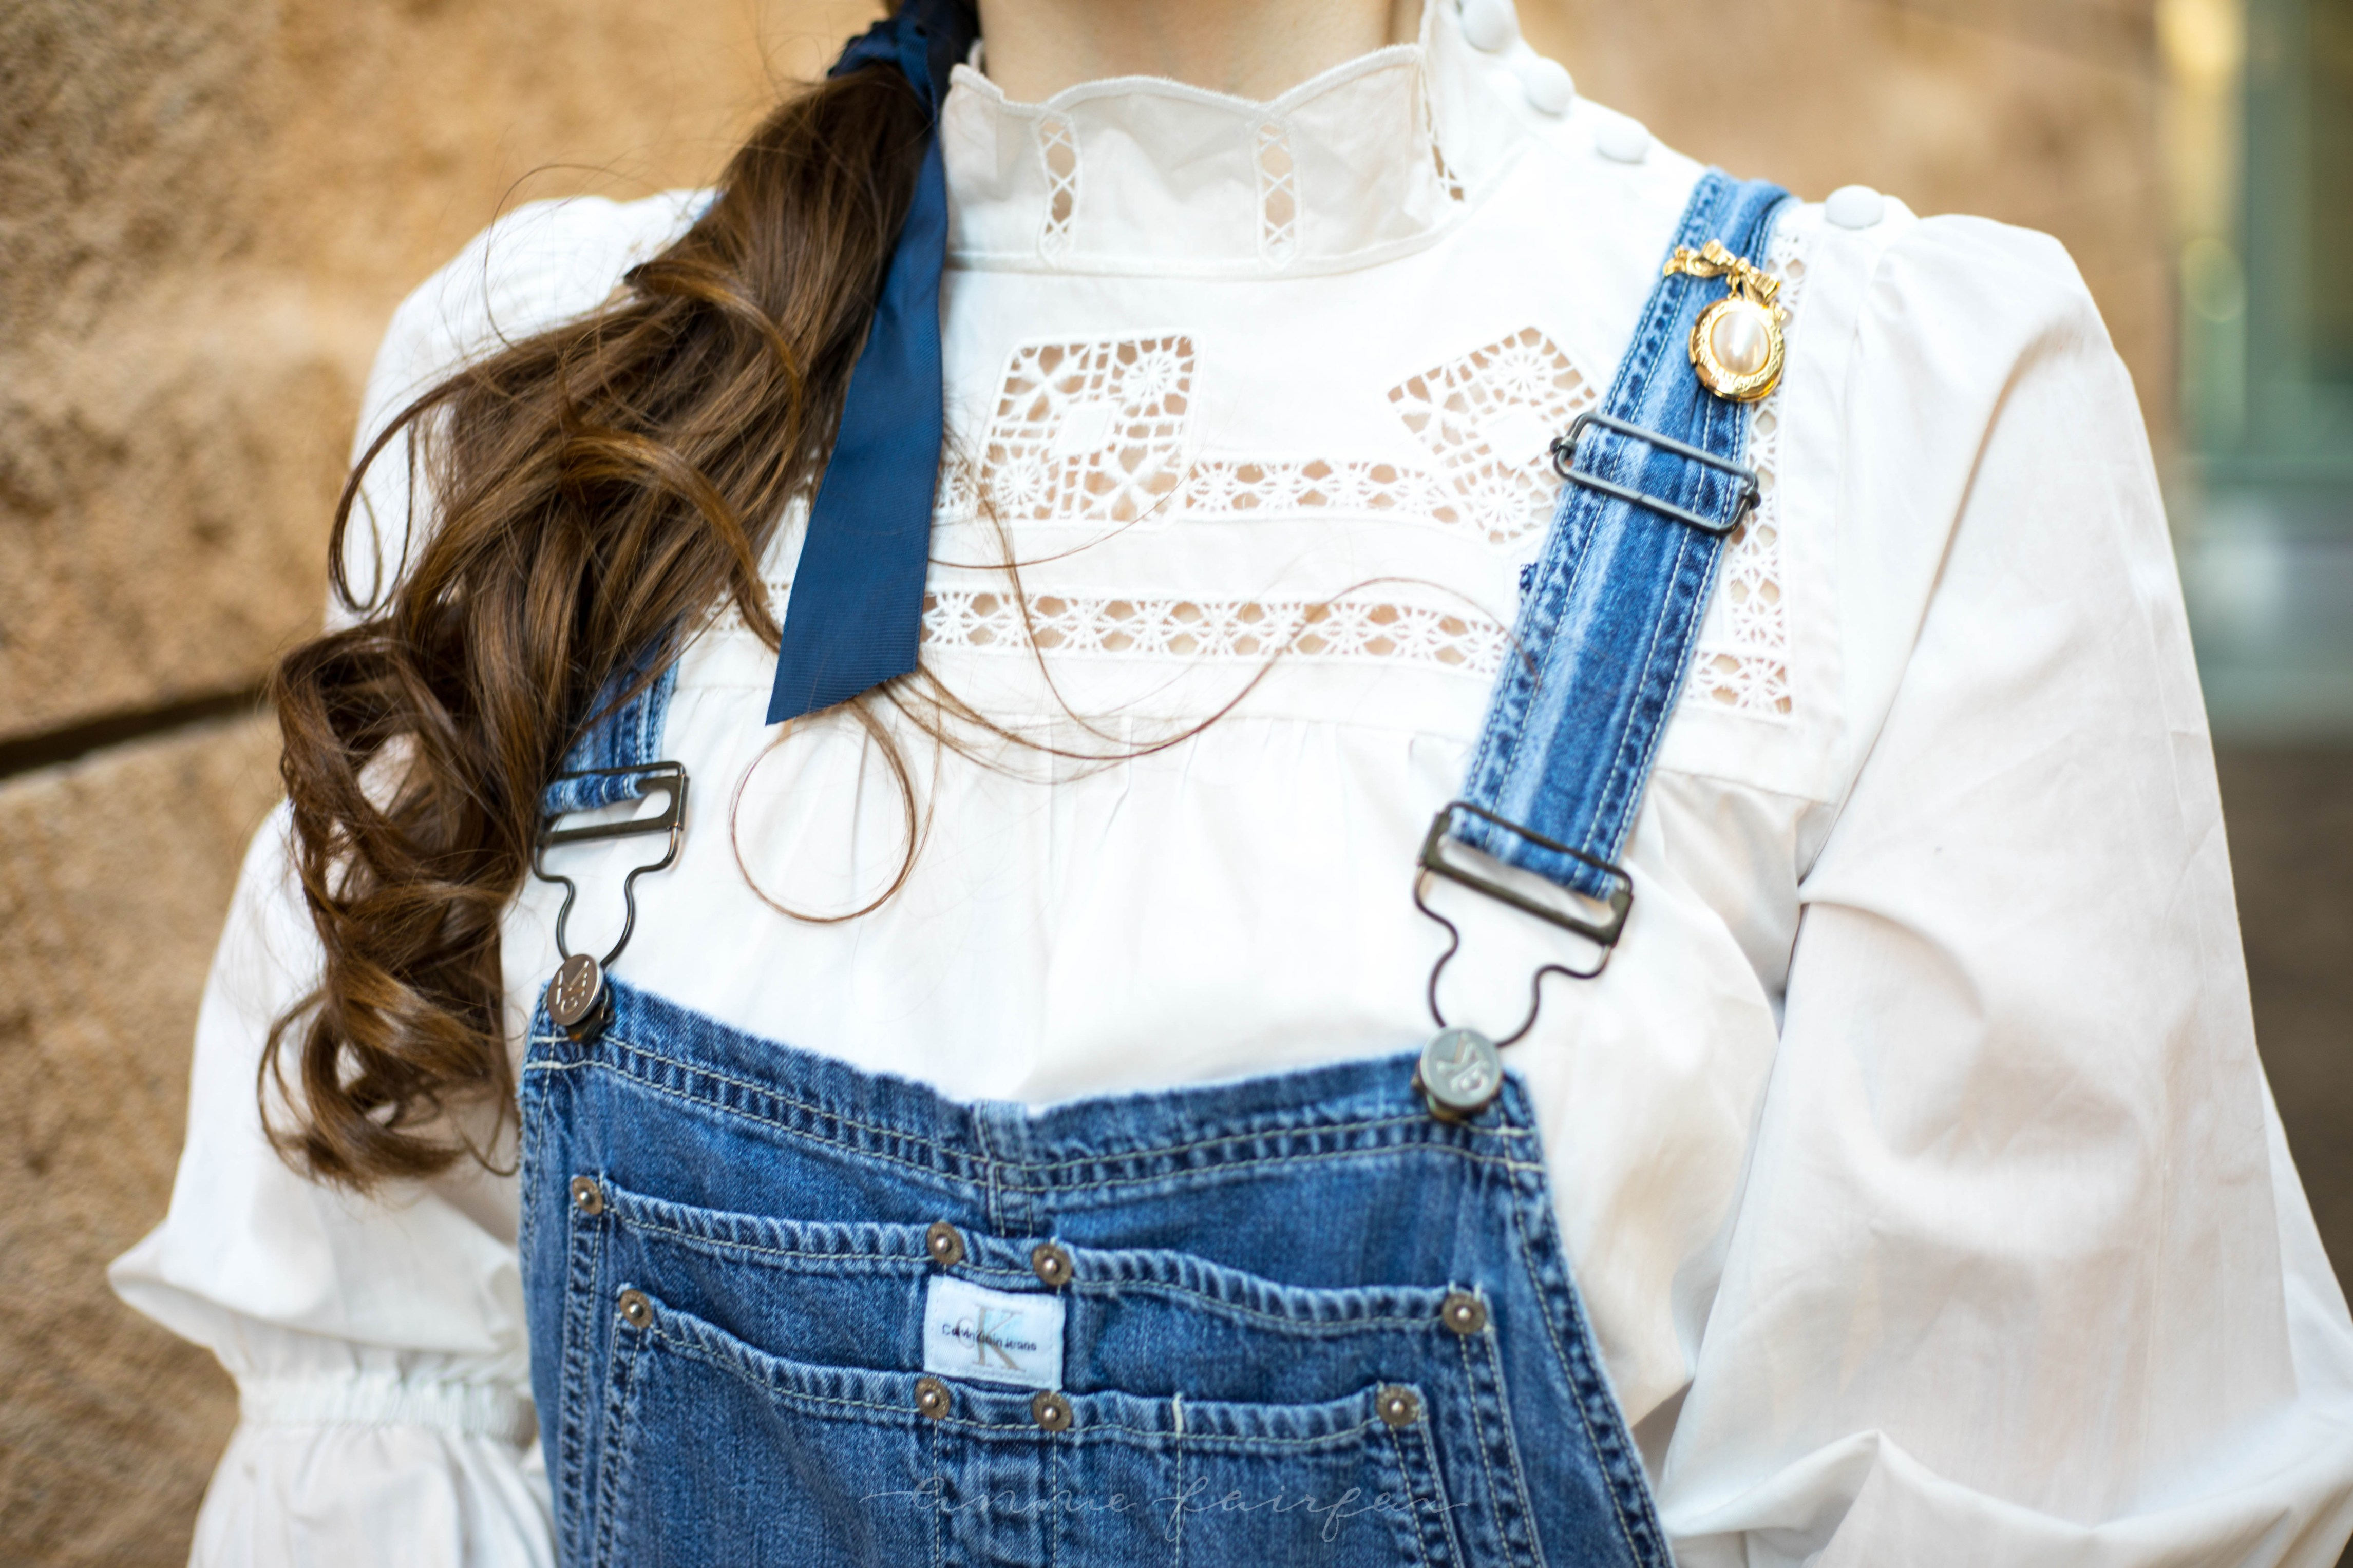 Feathered Pour La Victoire Shoes Denim Overalls Elegant Bell Sleeve Embroidered Free People Top